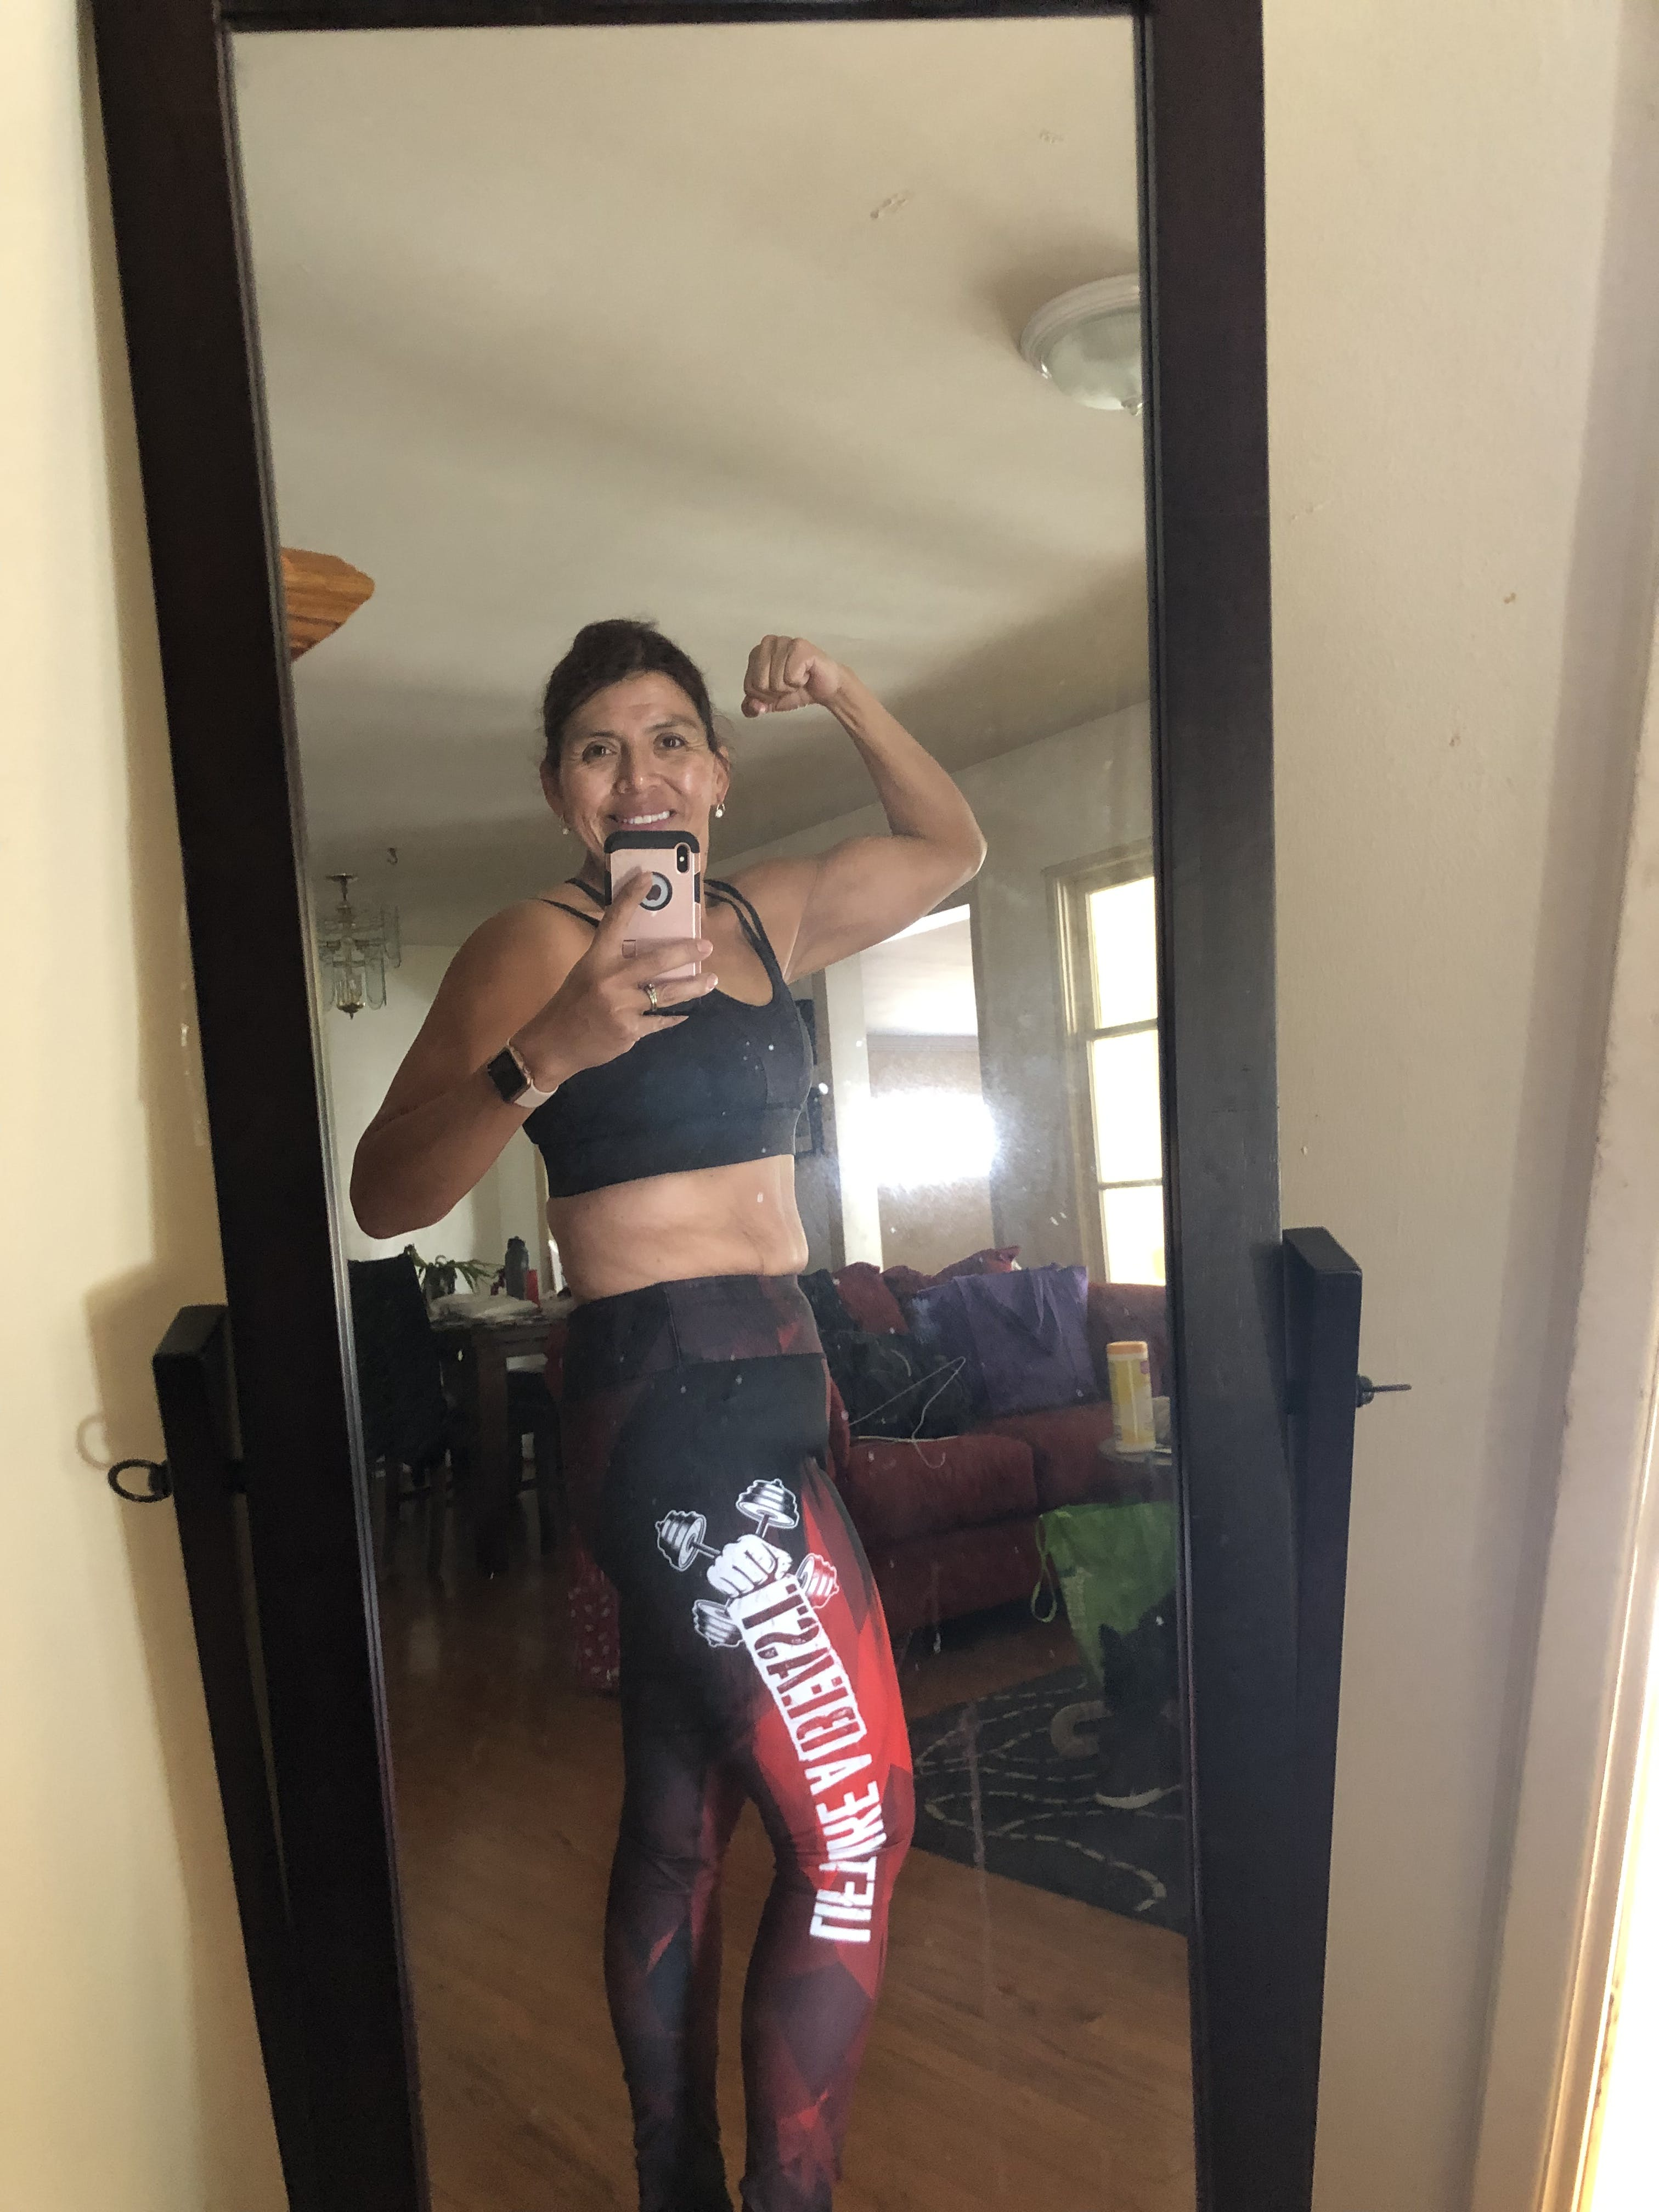 8b5f5a5cf The workout leggings are phenomenal and I love them. I always get  compliments from everyone when I wear them.